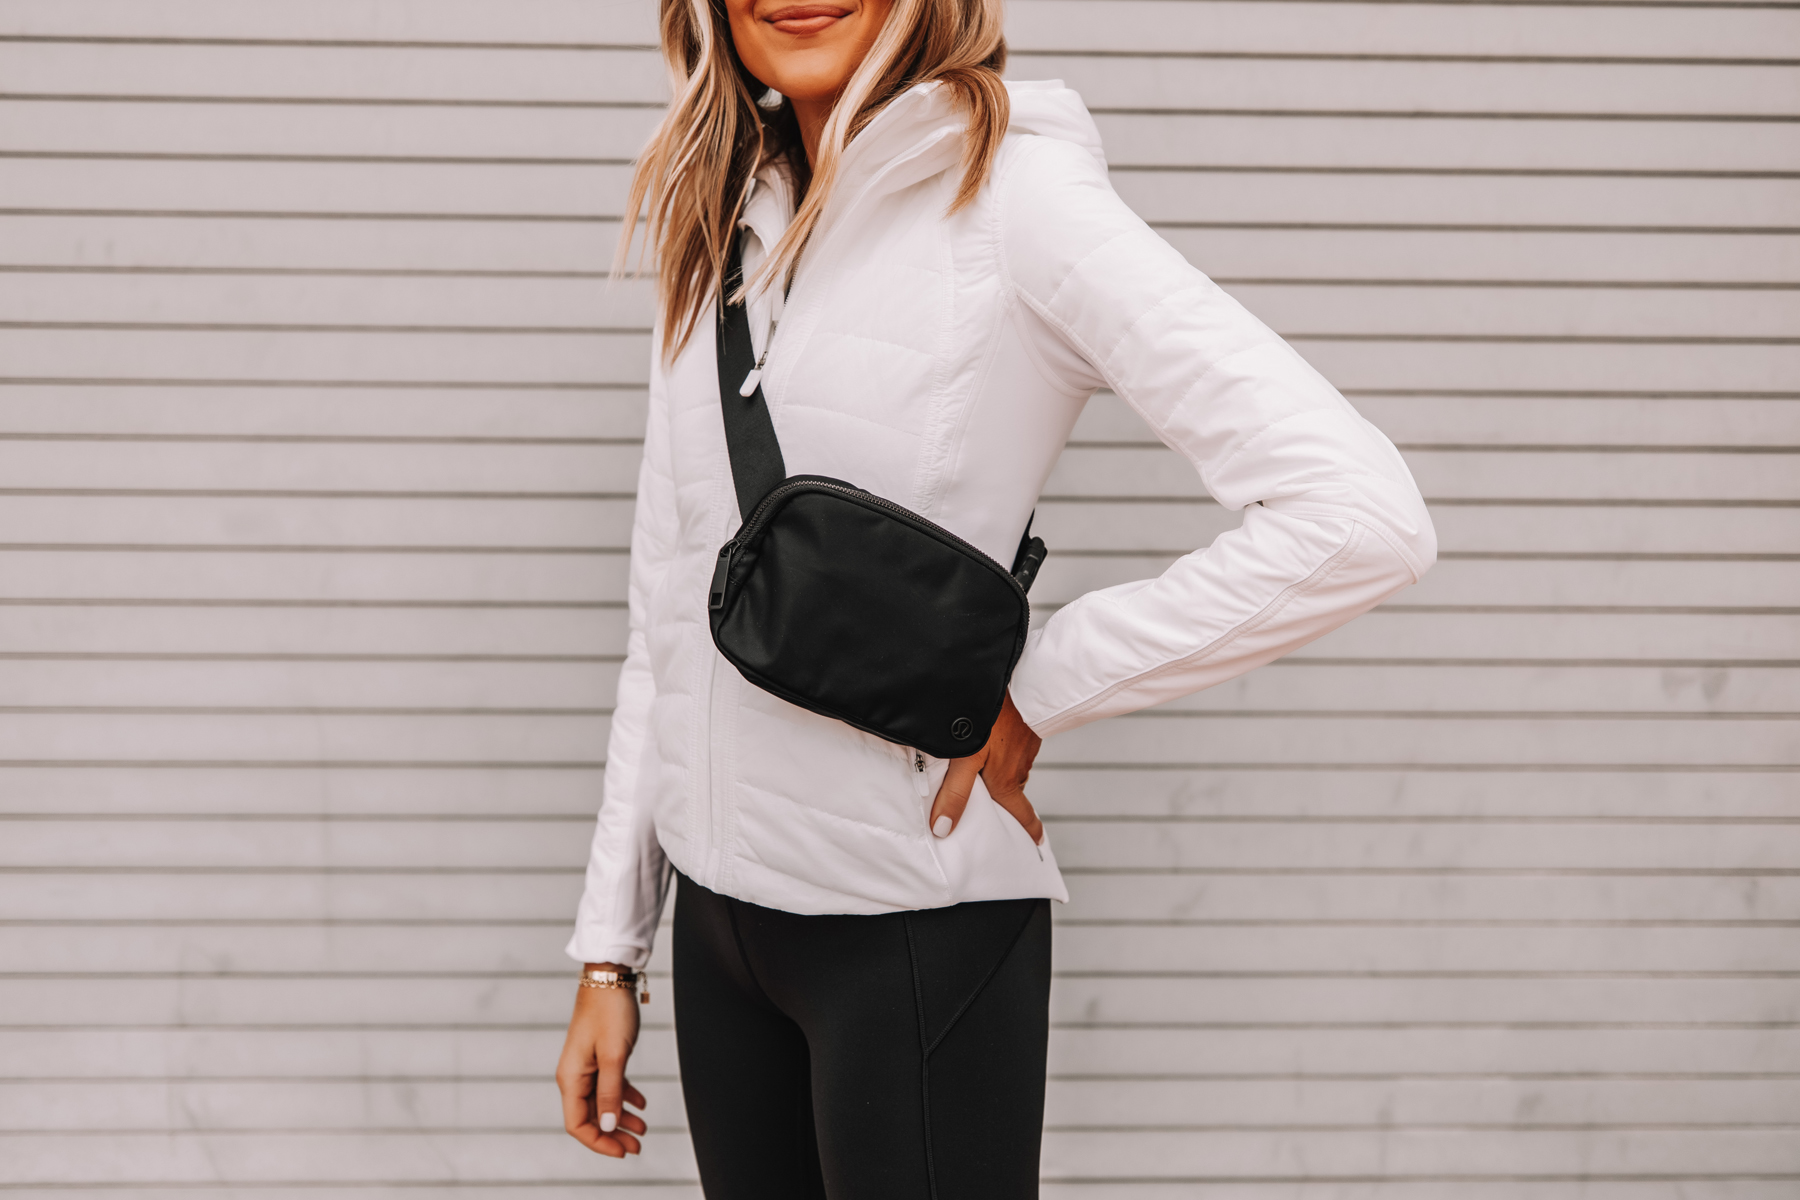 Fashion Jackson Wearing lululemon White Jacket Black Fanny Pack Workout Outfit